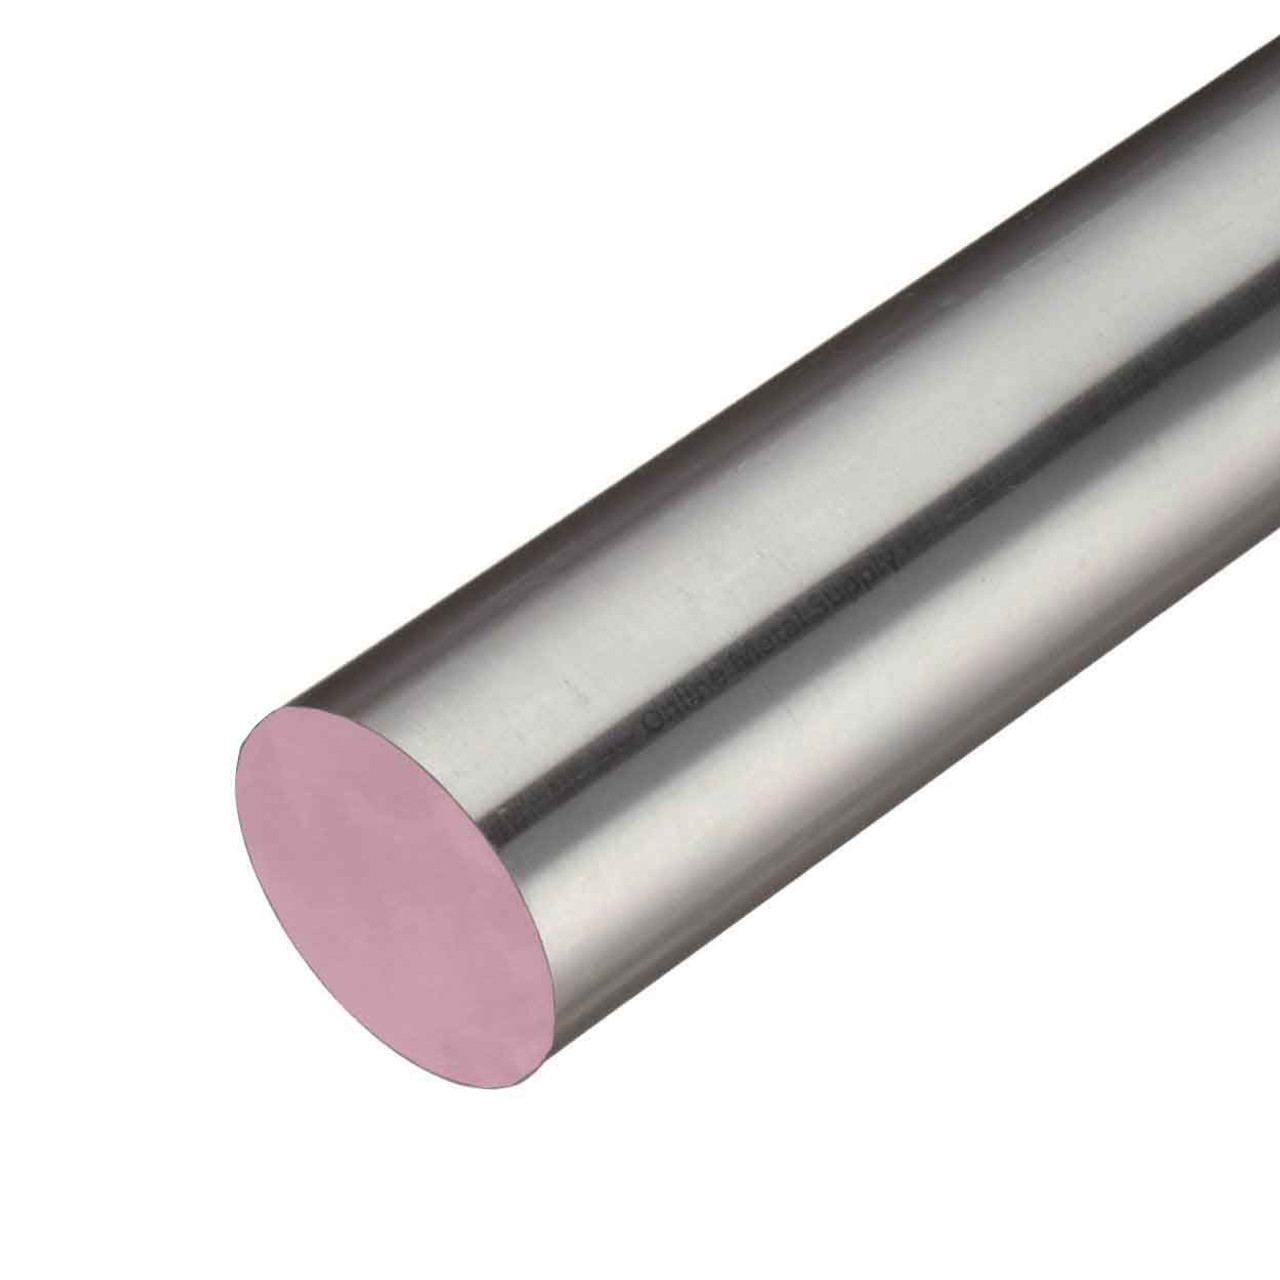 0.375 (3/8 inch) x 11 inches, 303 CF Stainless Steel Round Rod